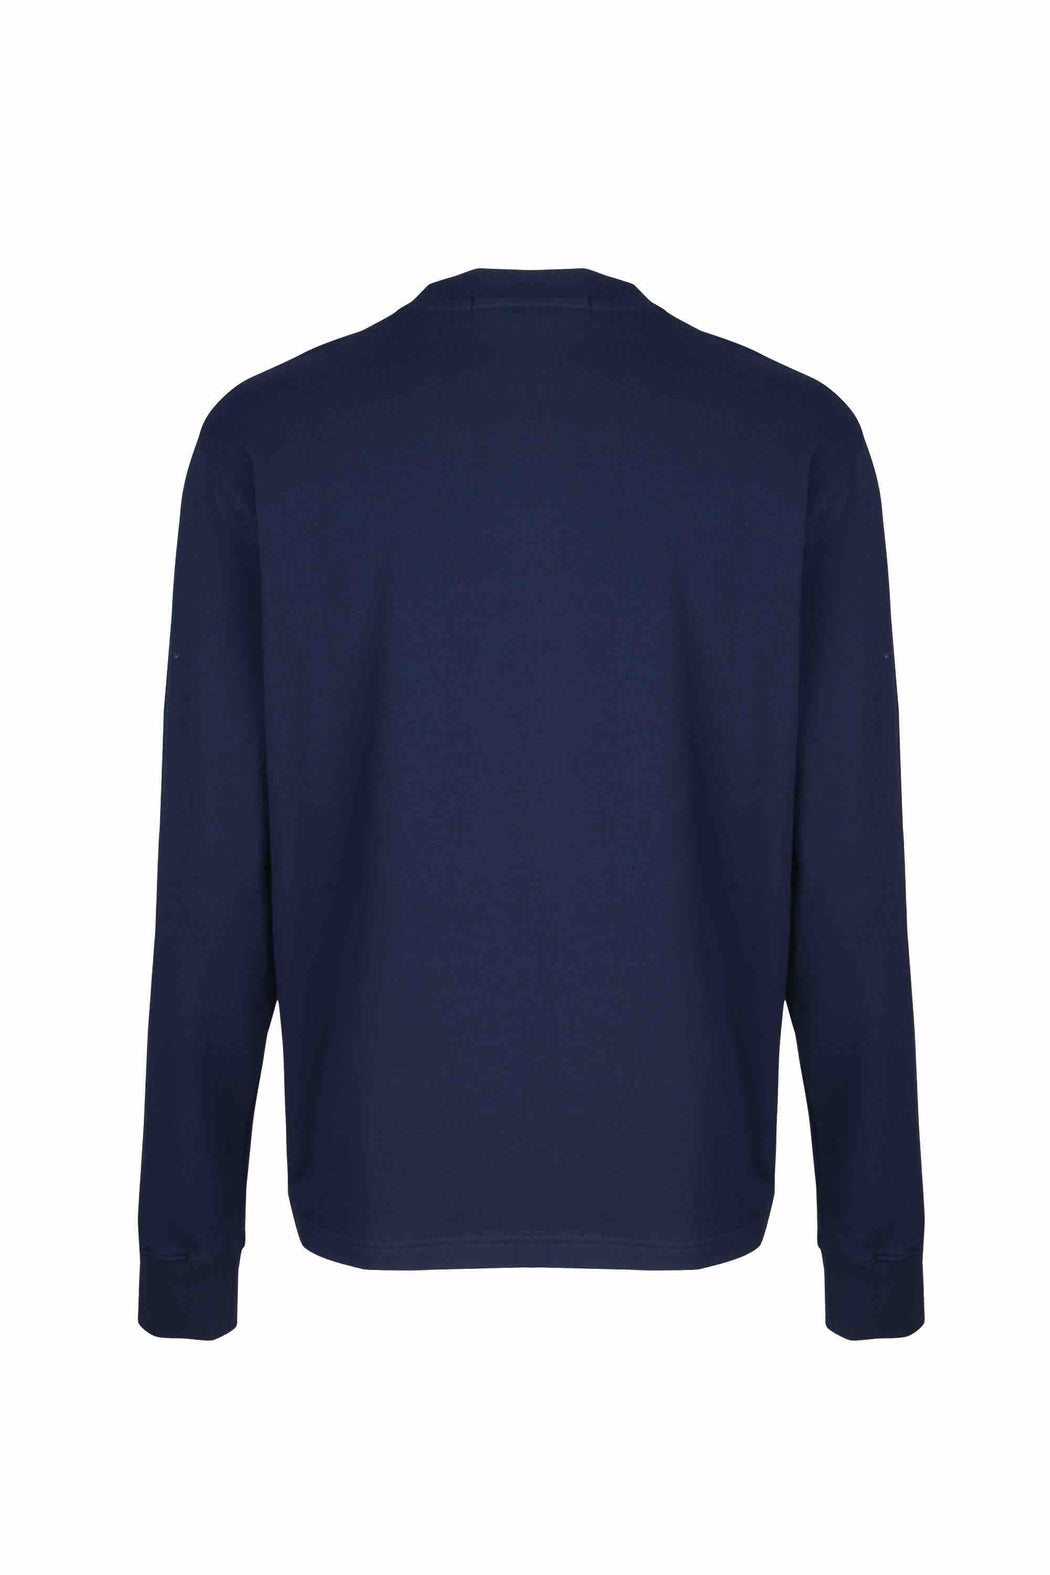 Back view of Men Big Kangaroo Pocket Side Zipper Sweatshirt made with Organic Cotton in Navy